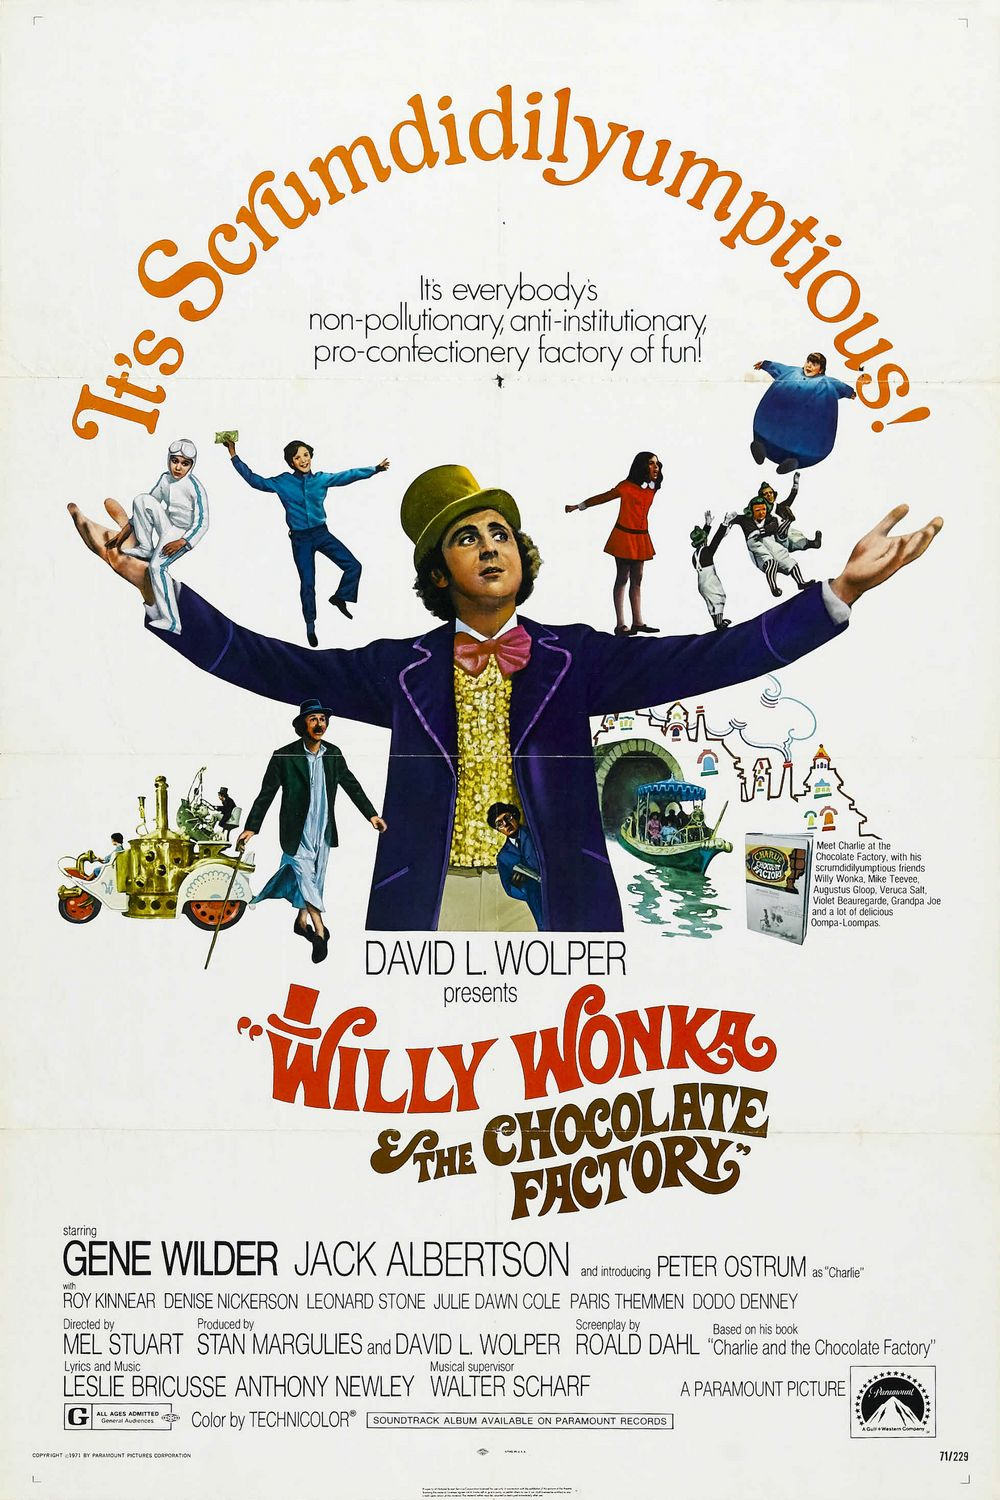 willy wonka the chocolate factory transcripts wiki fandom  039 willy wonka and the chocolate factory theatrical poster